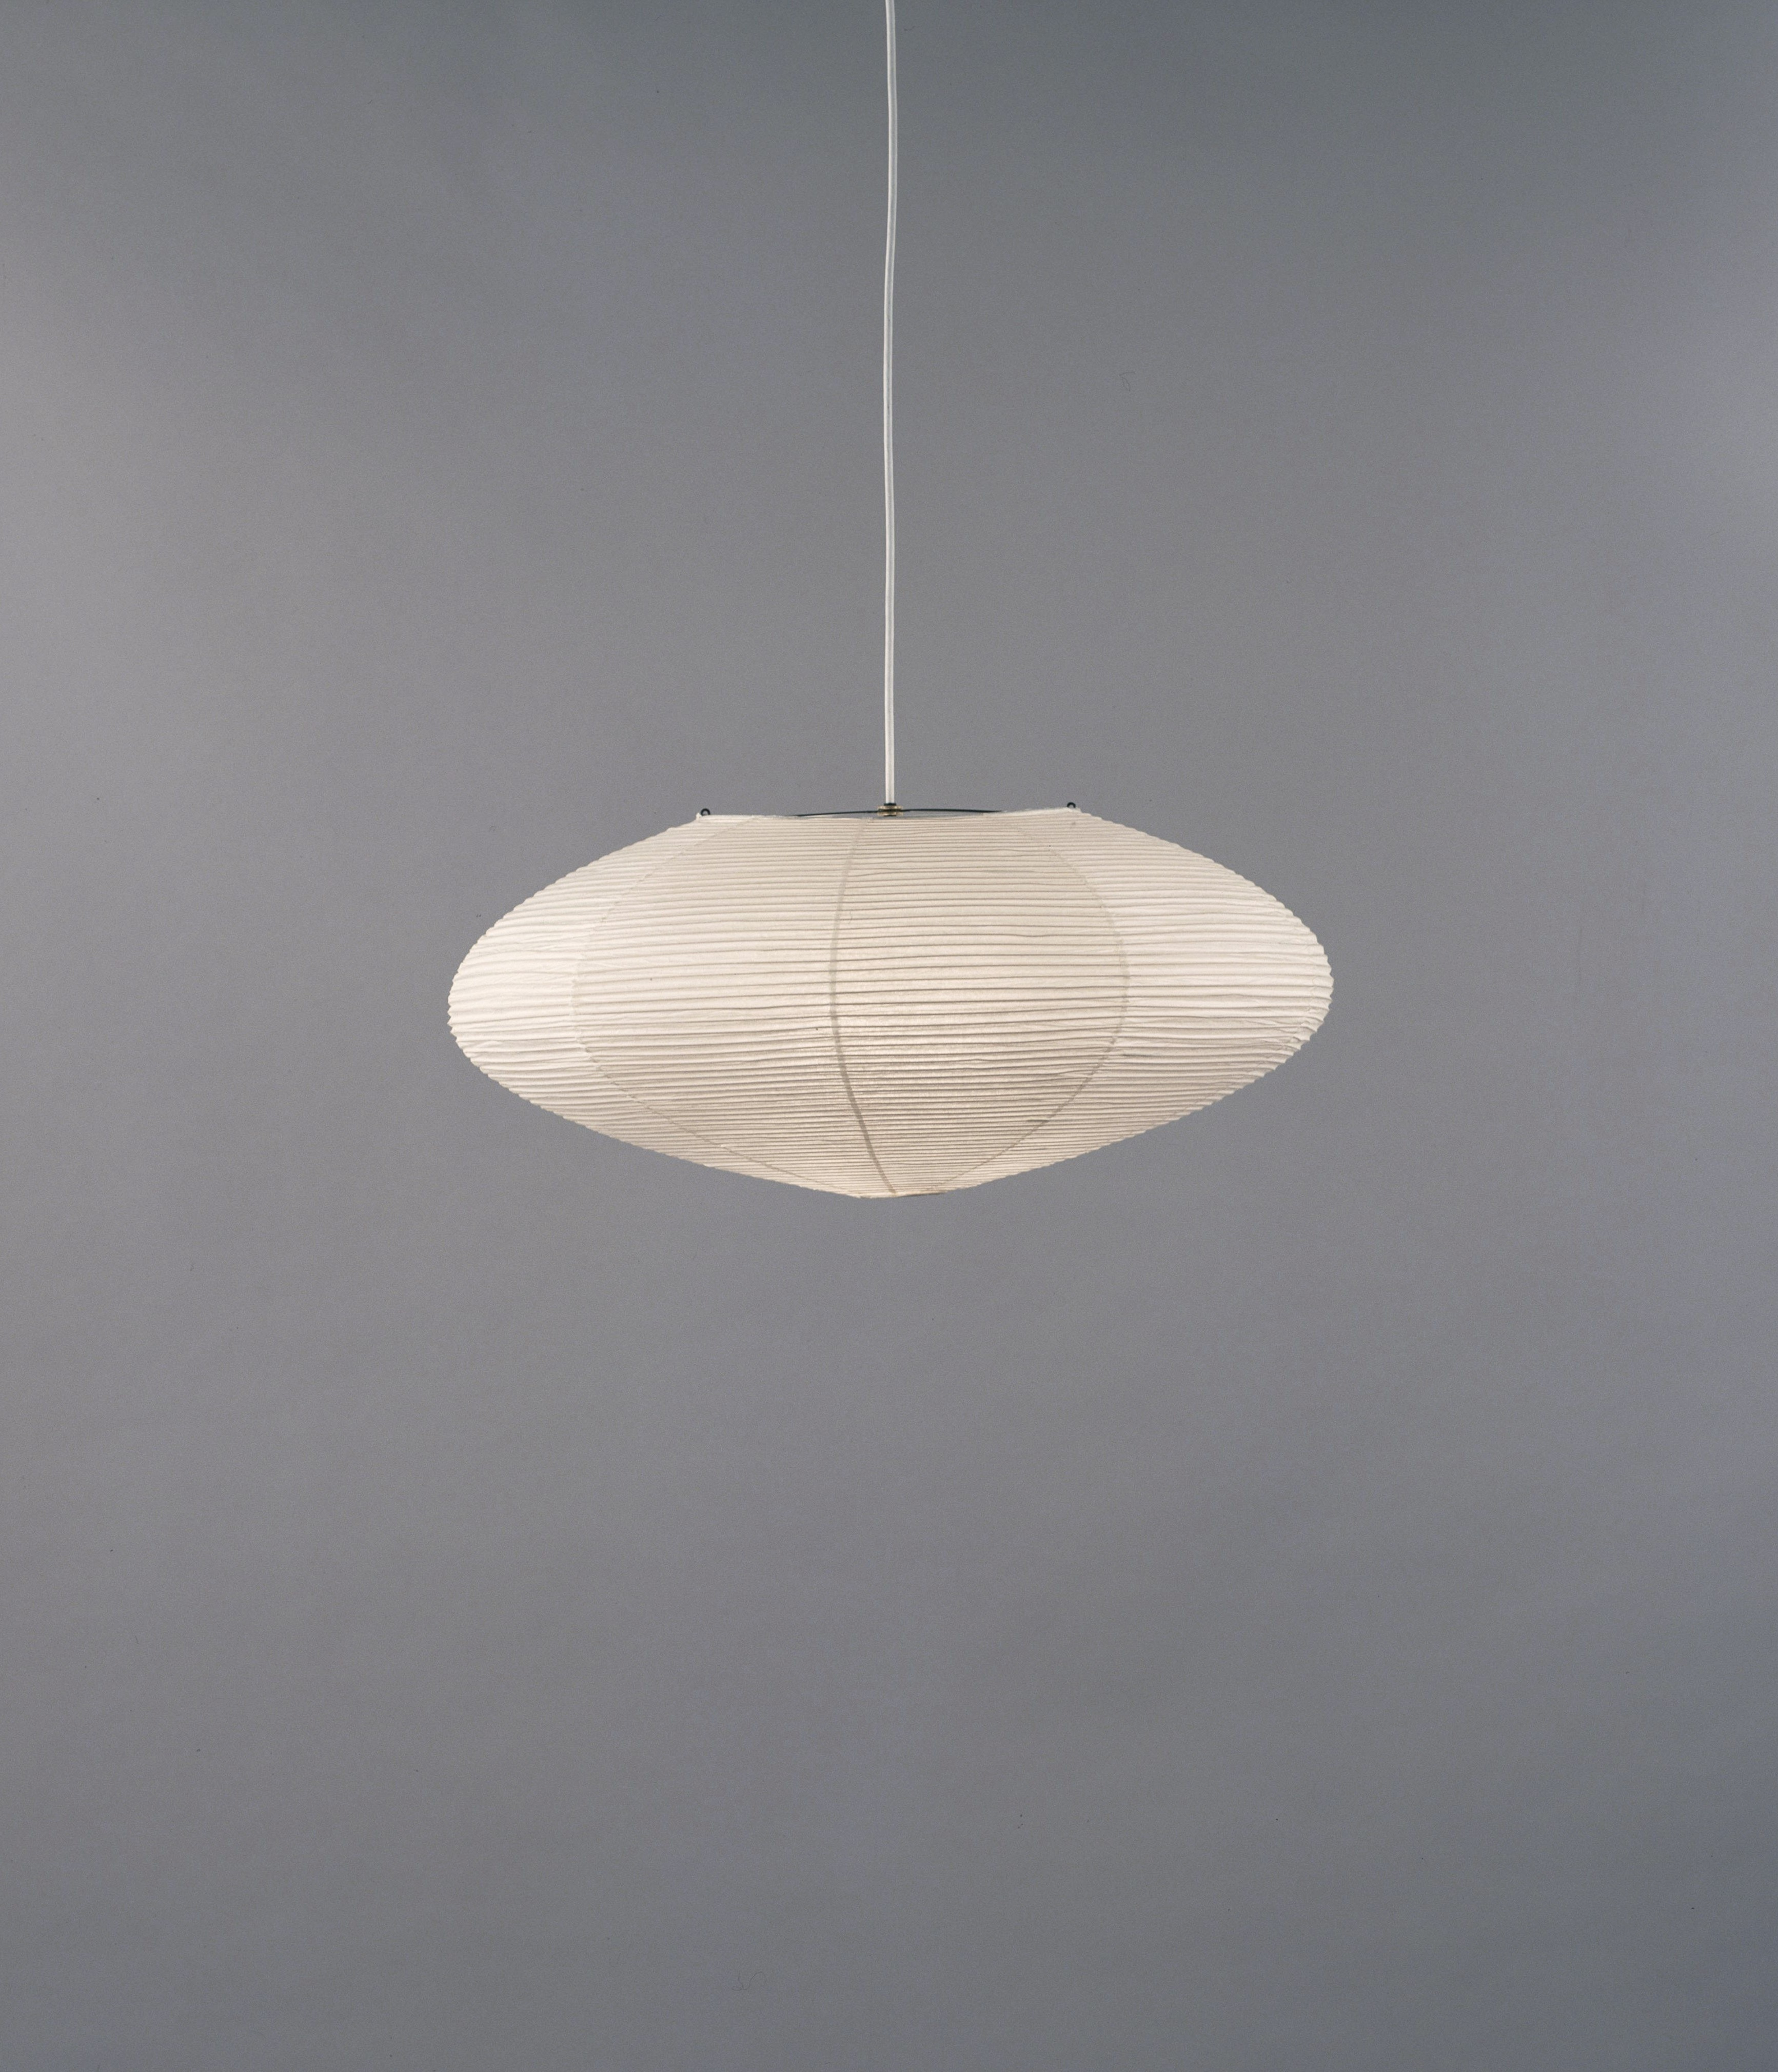 Akari Noguchi Model 26A Ceiling Lamp with Hardwire Kit